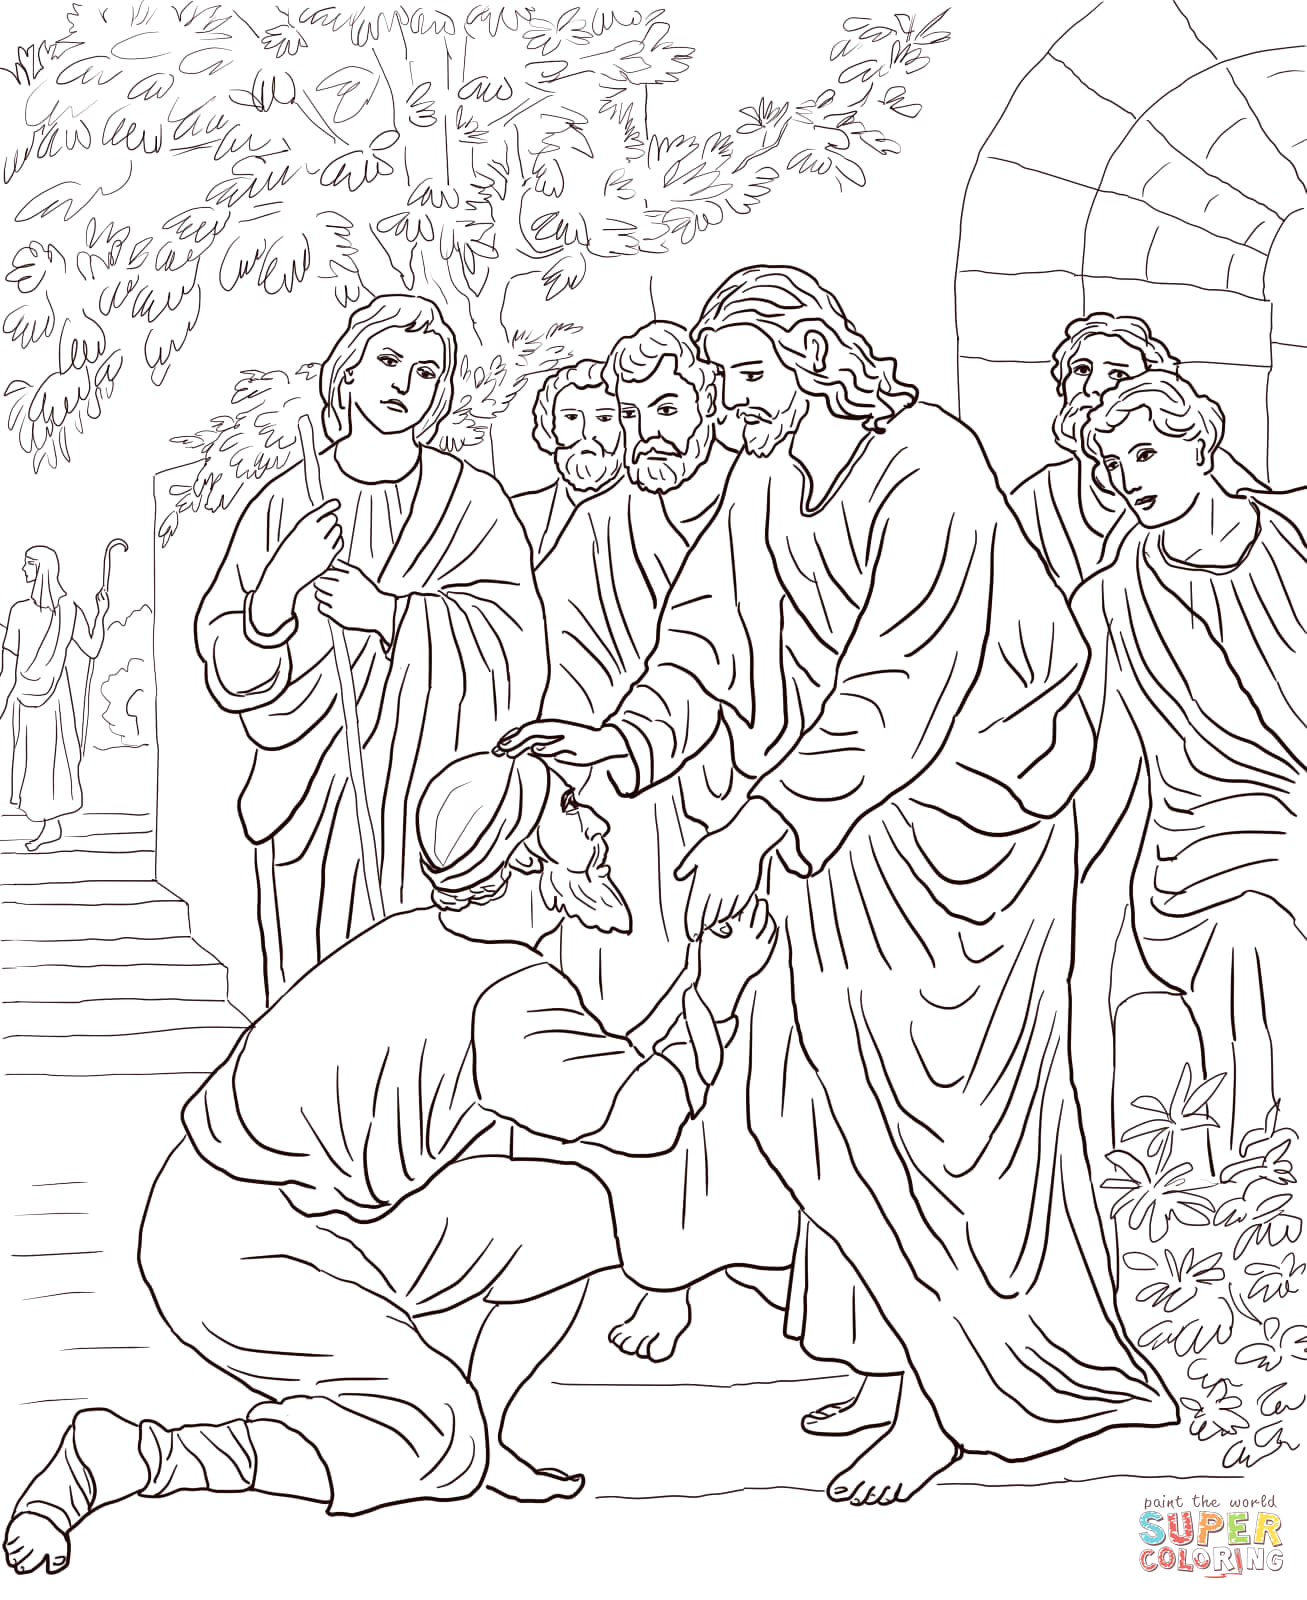 Jesus and the Blind Man Coloring Page Jesus Heals the Blind Man Coloring Page at Getdrawings